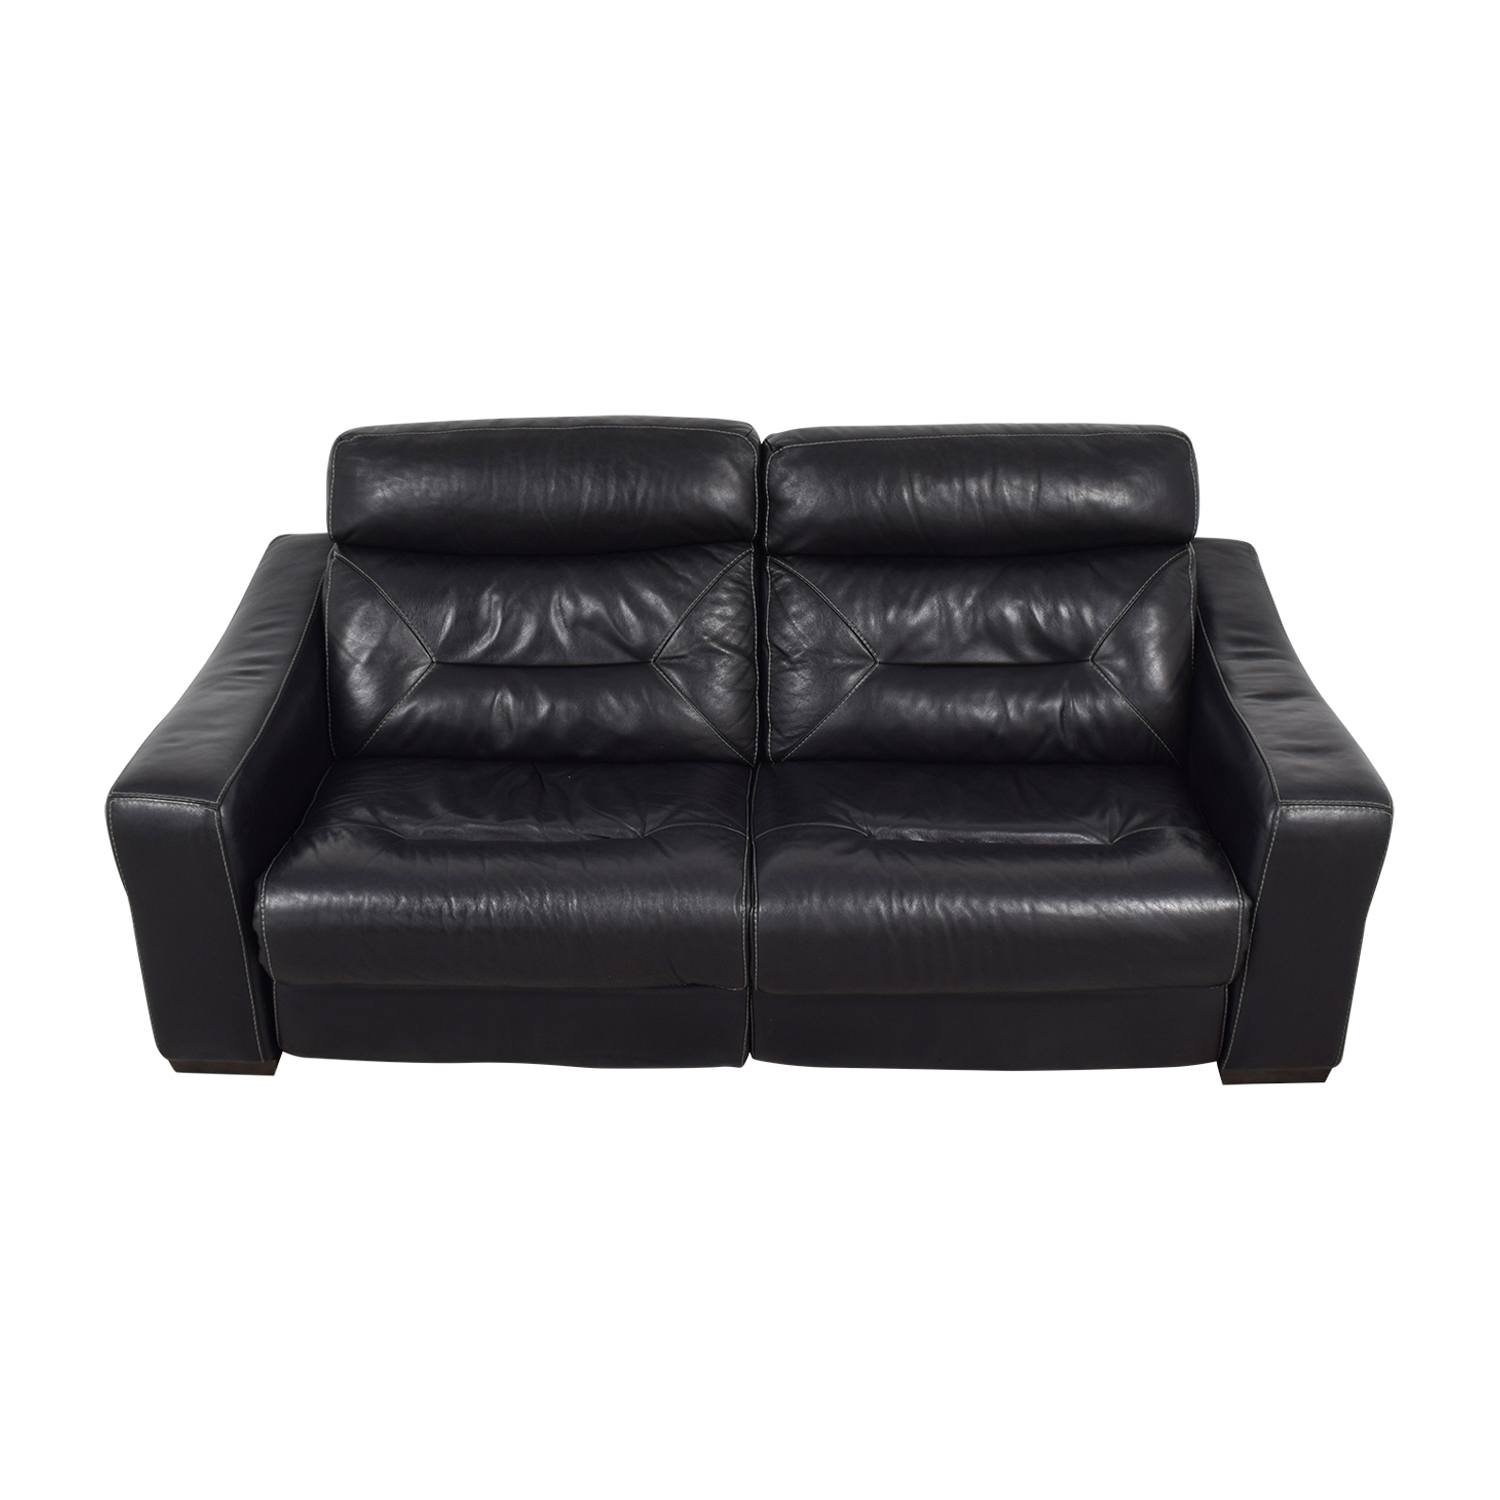 Macy's Black Leather Recliner Sofa Macy's